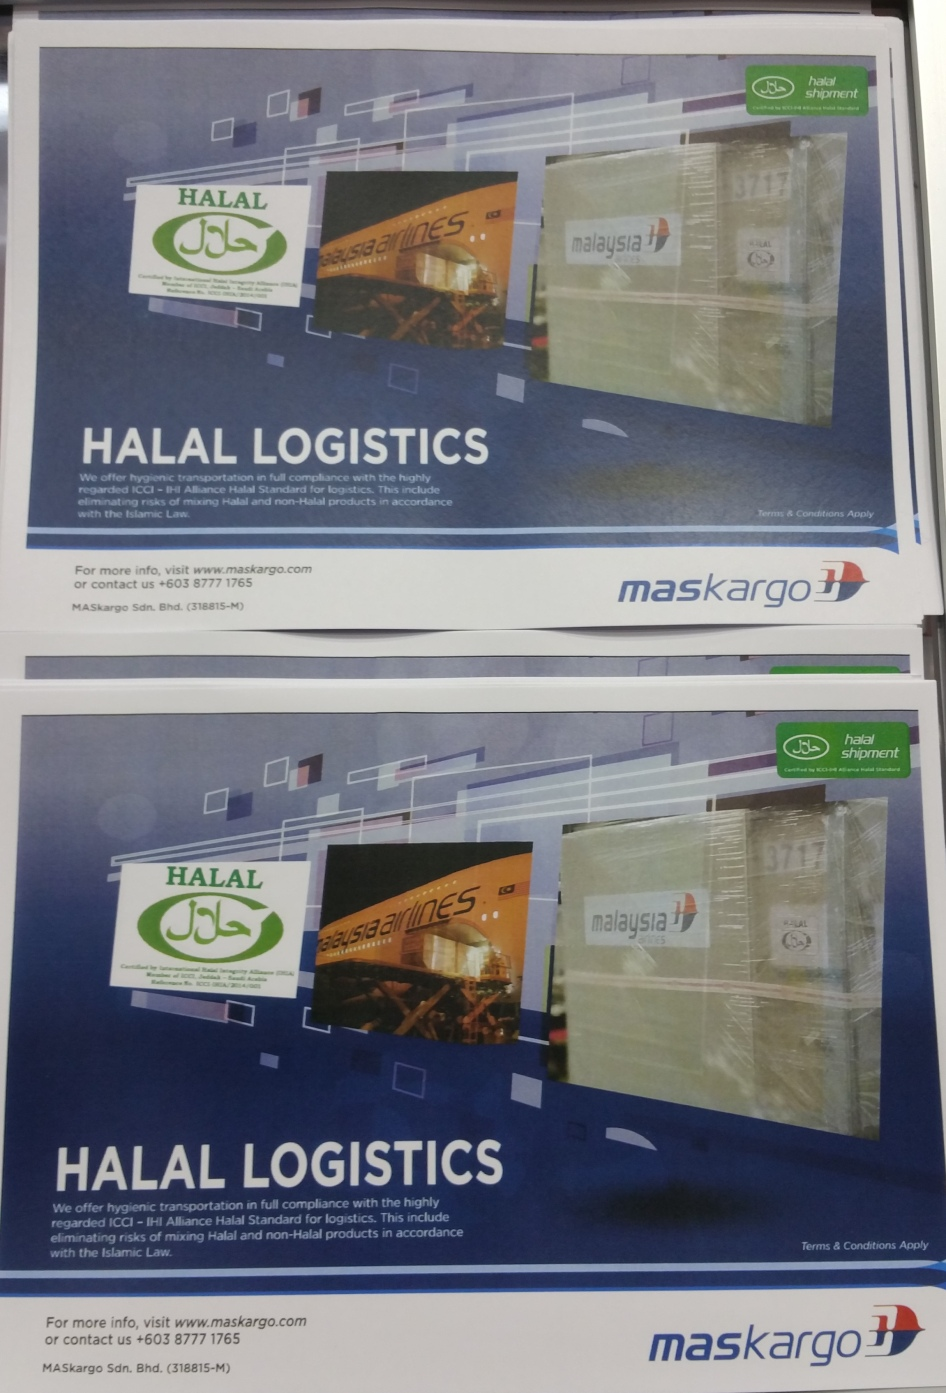 Halal logistics solution from Malaysia Airlines